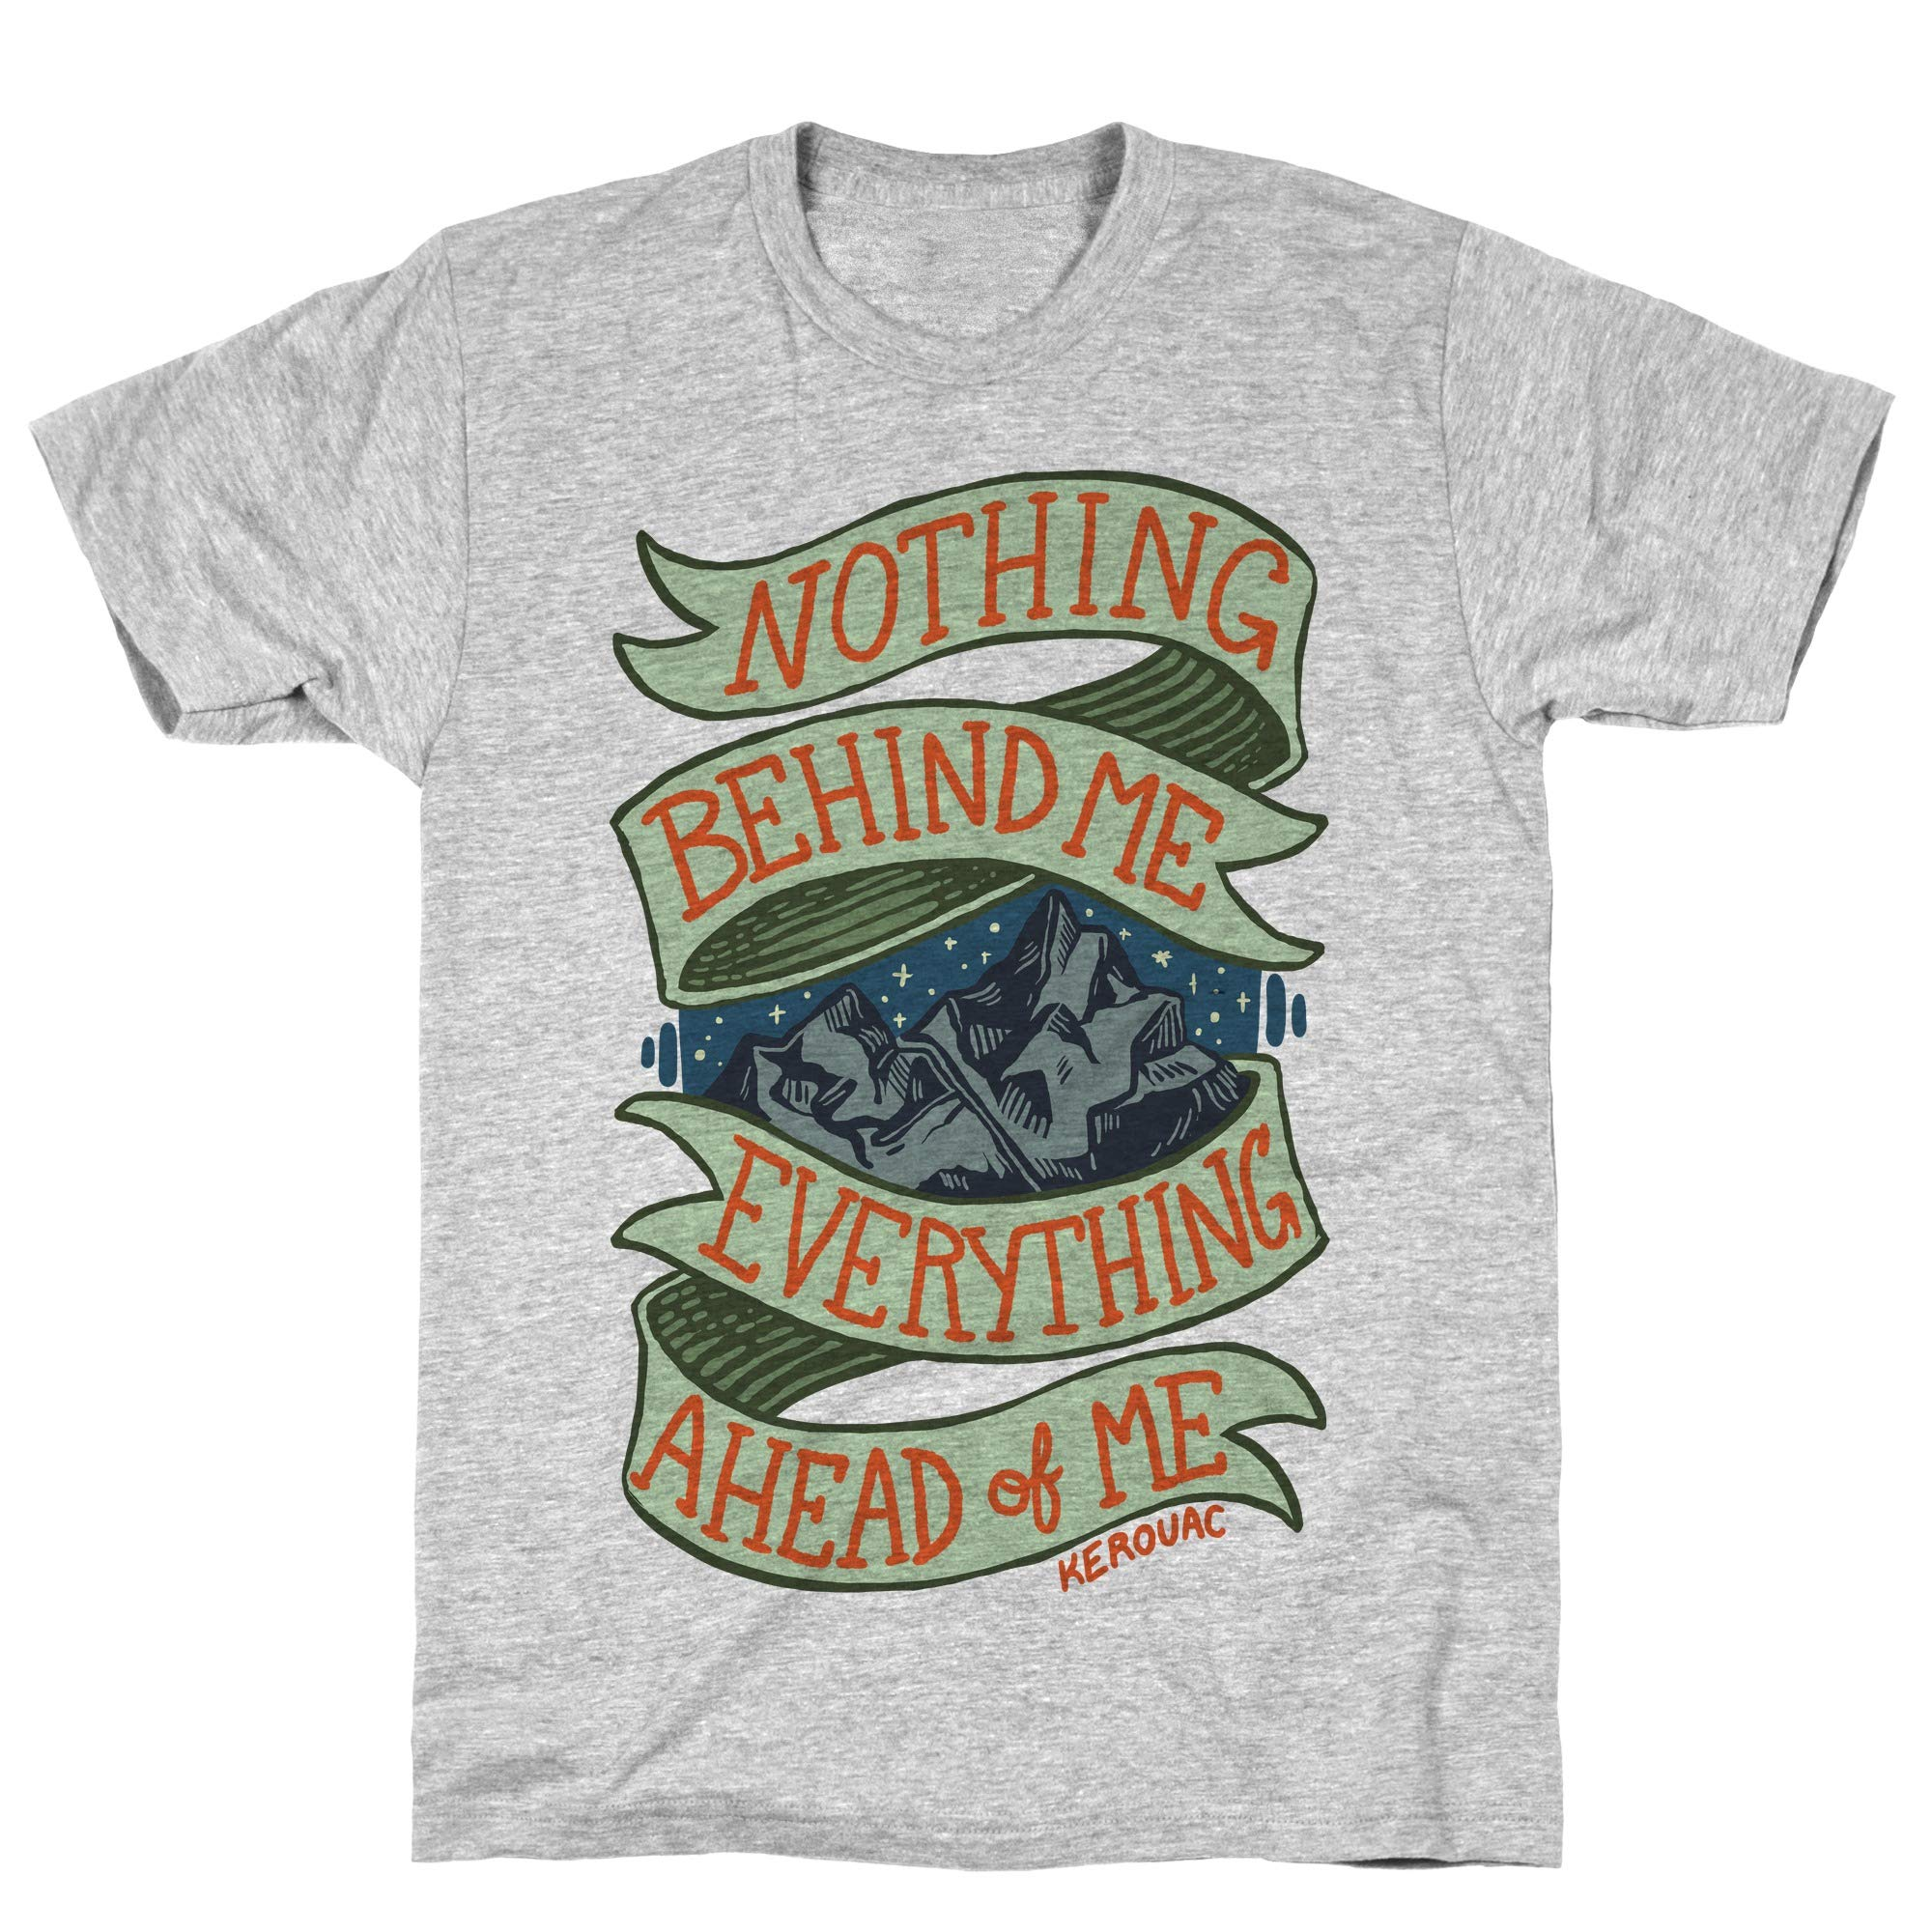 Nothing Behind Me Everything Ahead Of Me Kerouac Athletic Gray S Ts Shirts